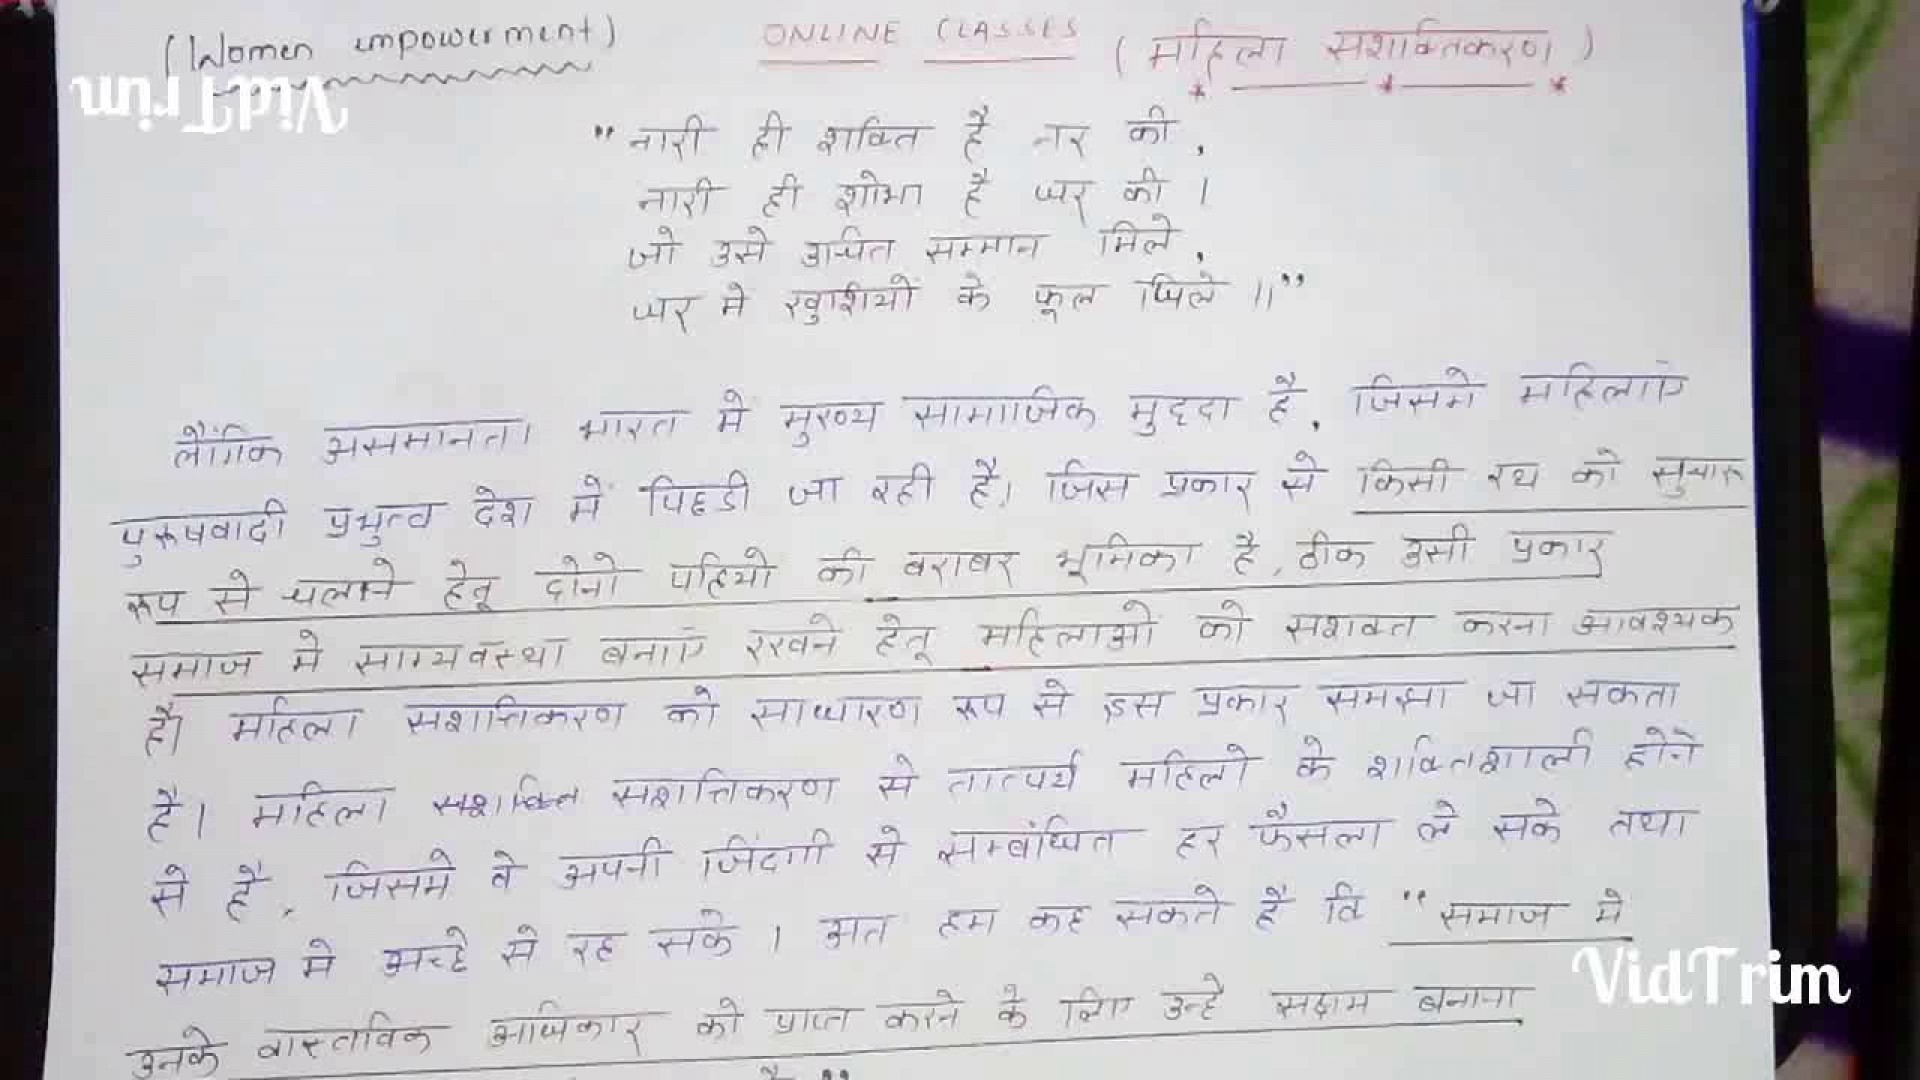 016 Essay Example On Electricity In Hindi Imposing Veto Power Youth Problem Language 1920